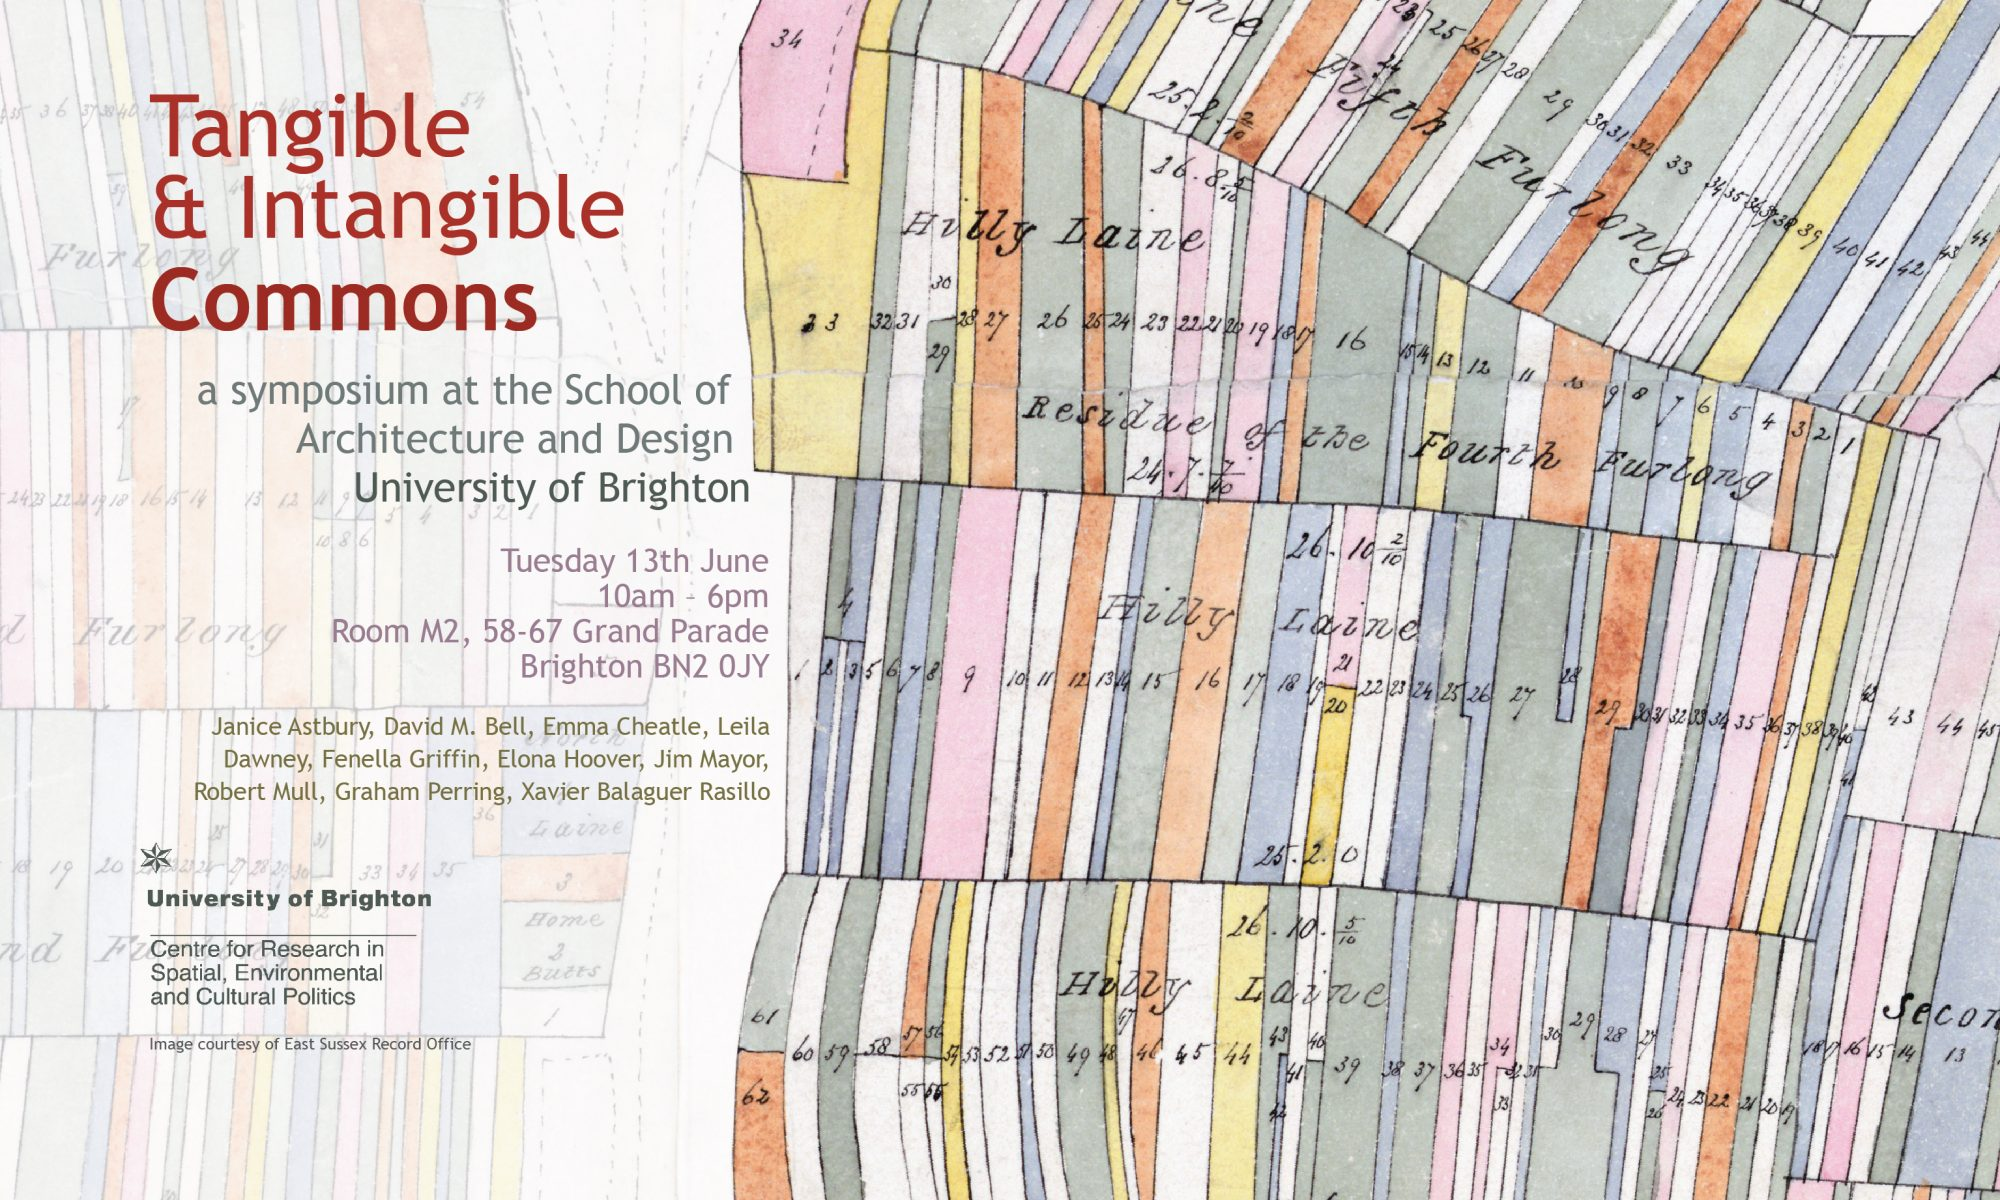 Tangible & Intangible Commons